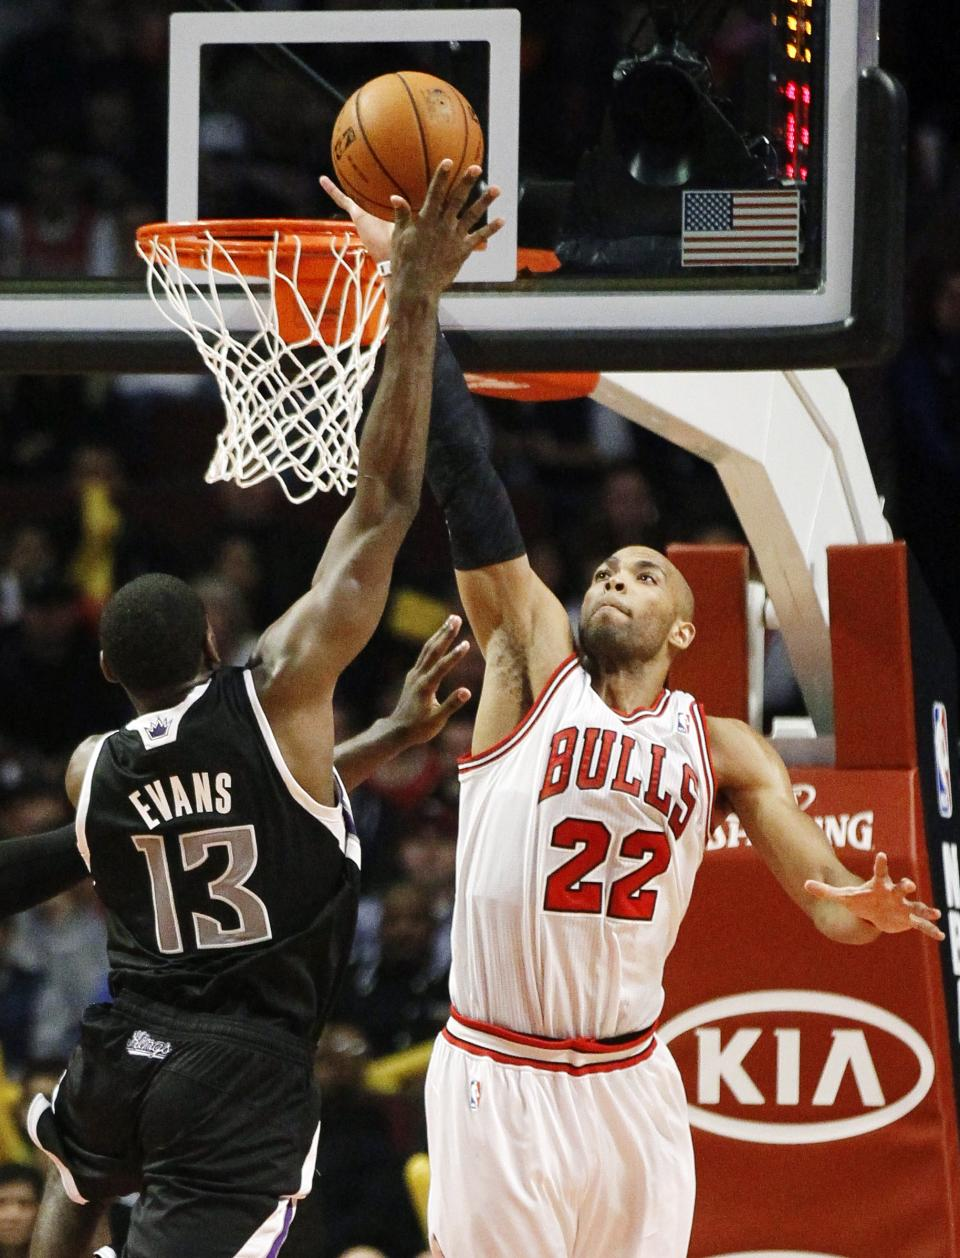 Chicago Bulls power forward Taj Gibson (22) challenges a shot by Sacramento Kings point guard Tyreke Evans (13) during the second half of an NBA basketball game, Wednesday, Oct. 31, 2012, in Chicago. The Bulls won 93-87. (AP Photo/Charles Rex Arbogast)